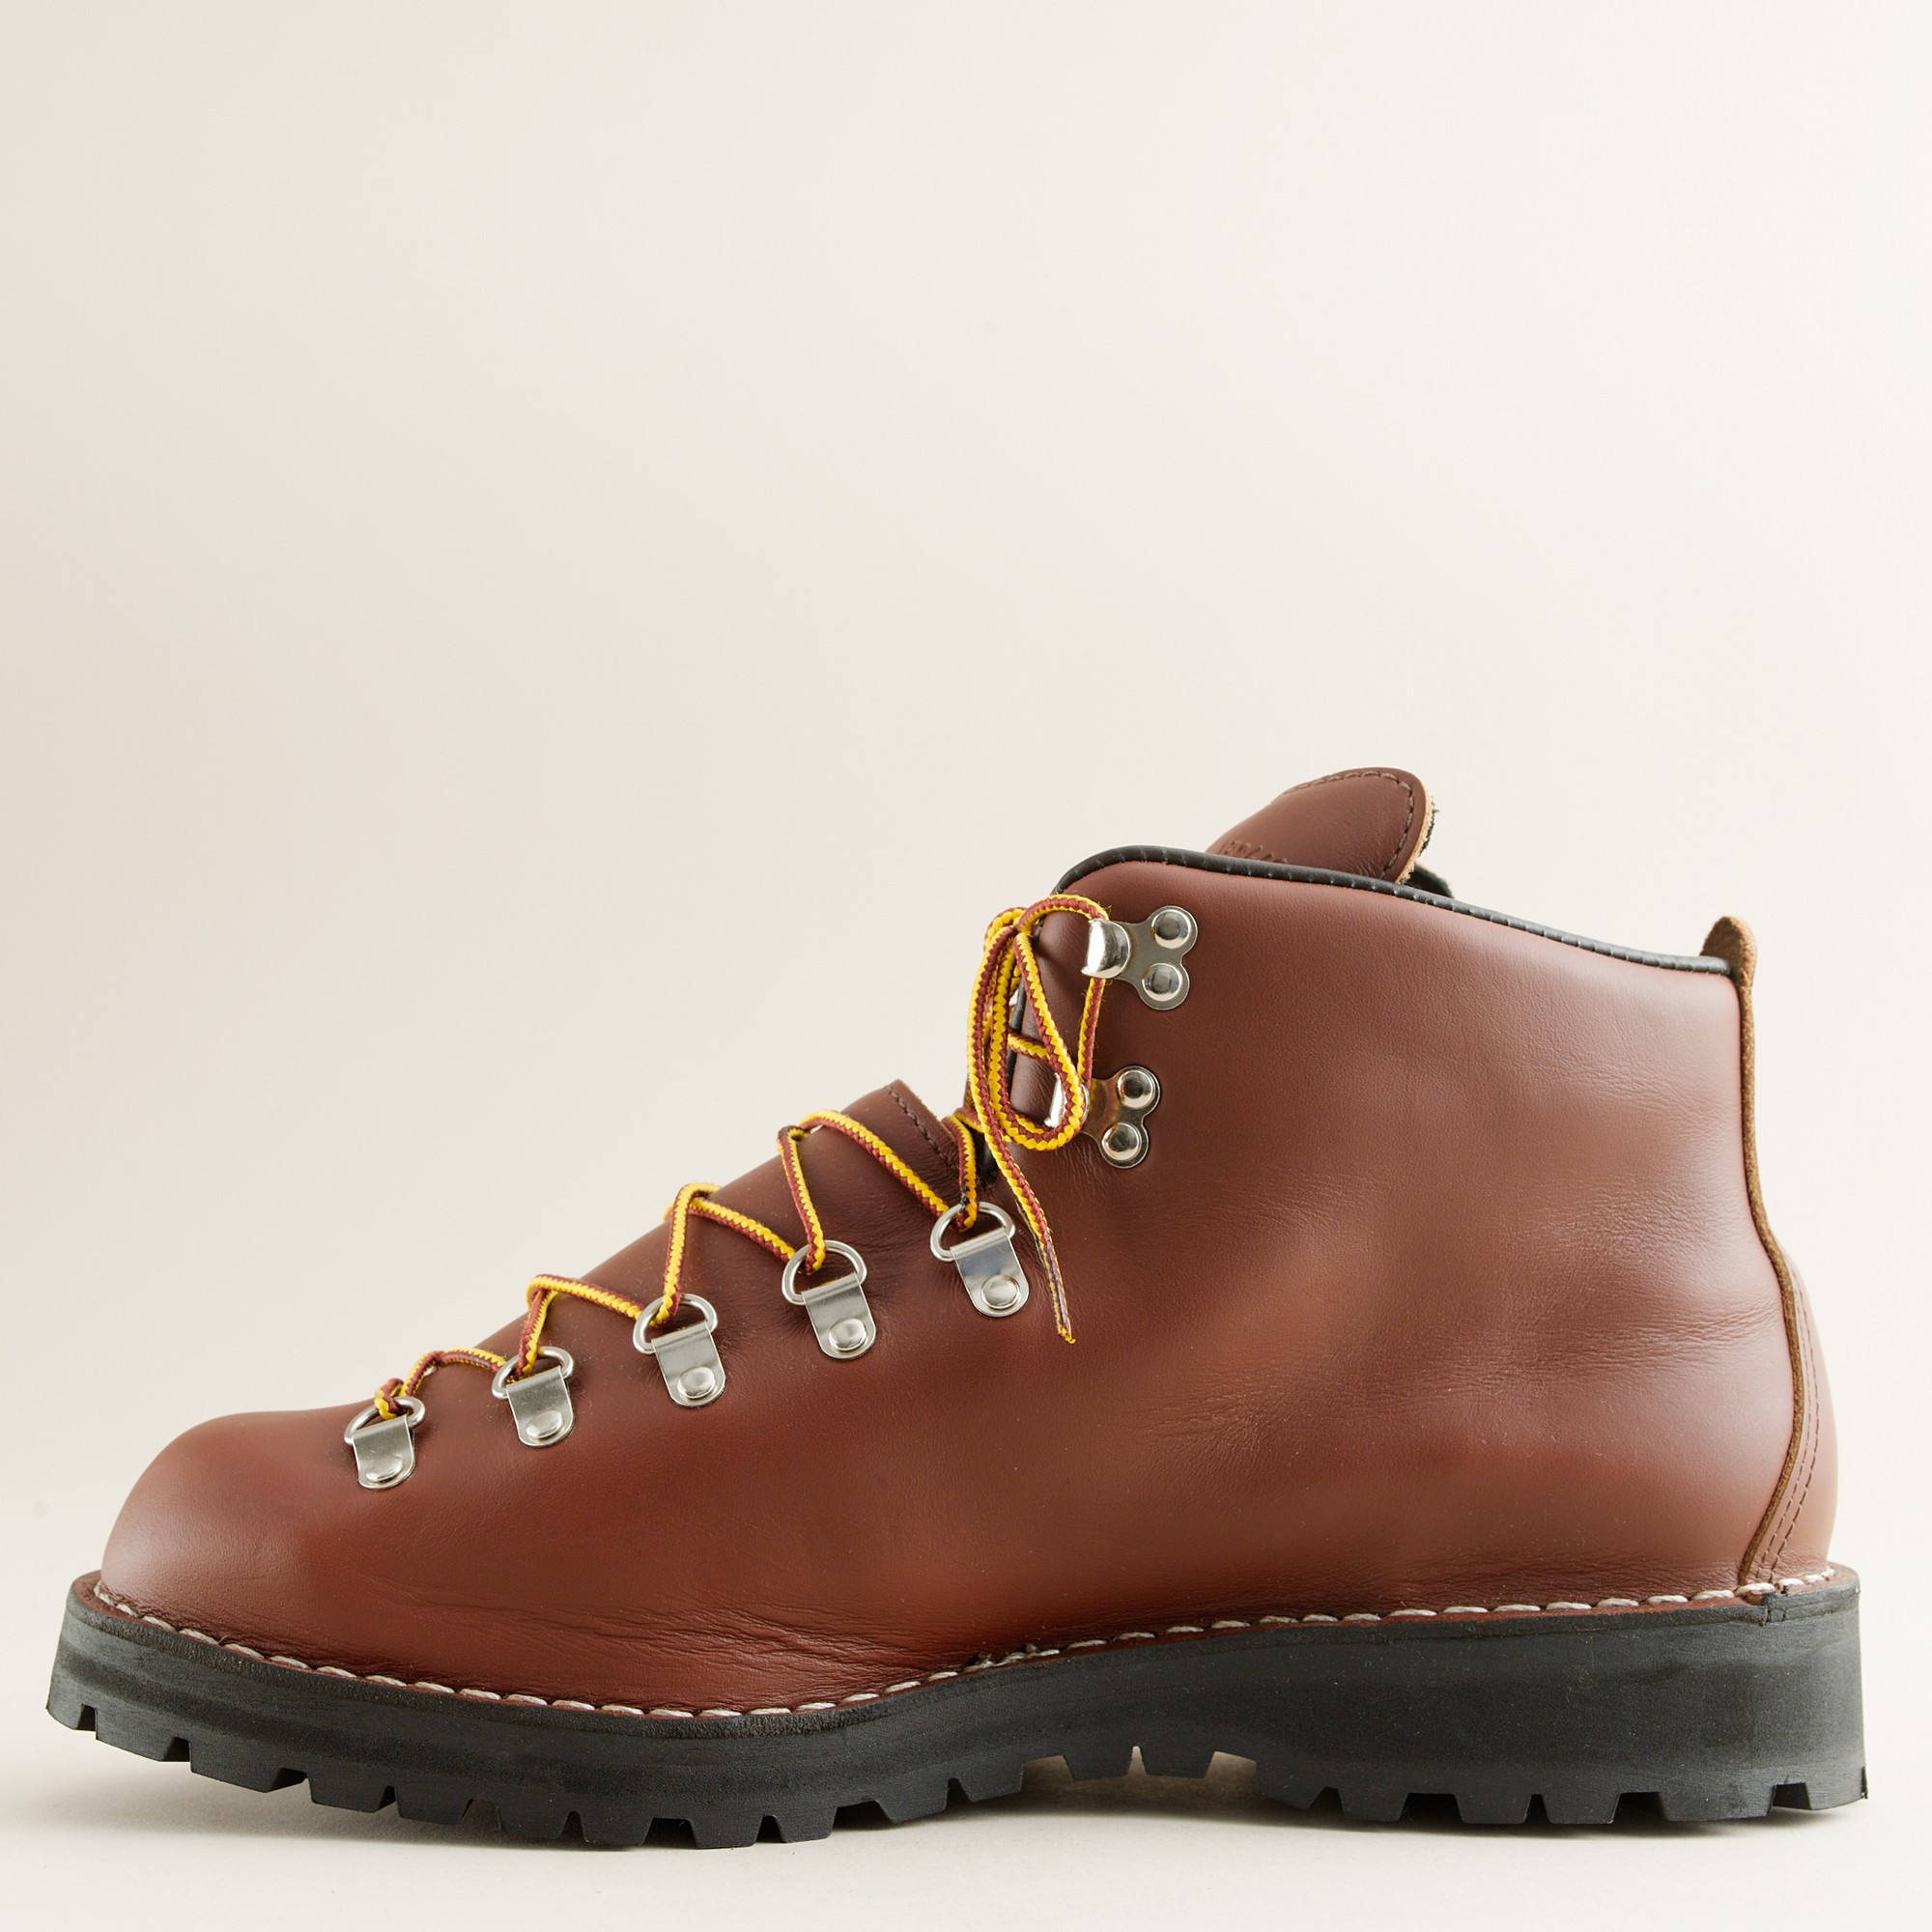 crew danner mountain light ii hiking boots in brown for men lyst. Black Bedroom Furniture Sets. Home Design Ideas